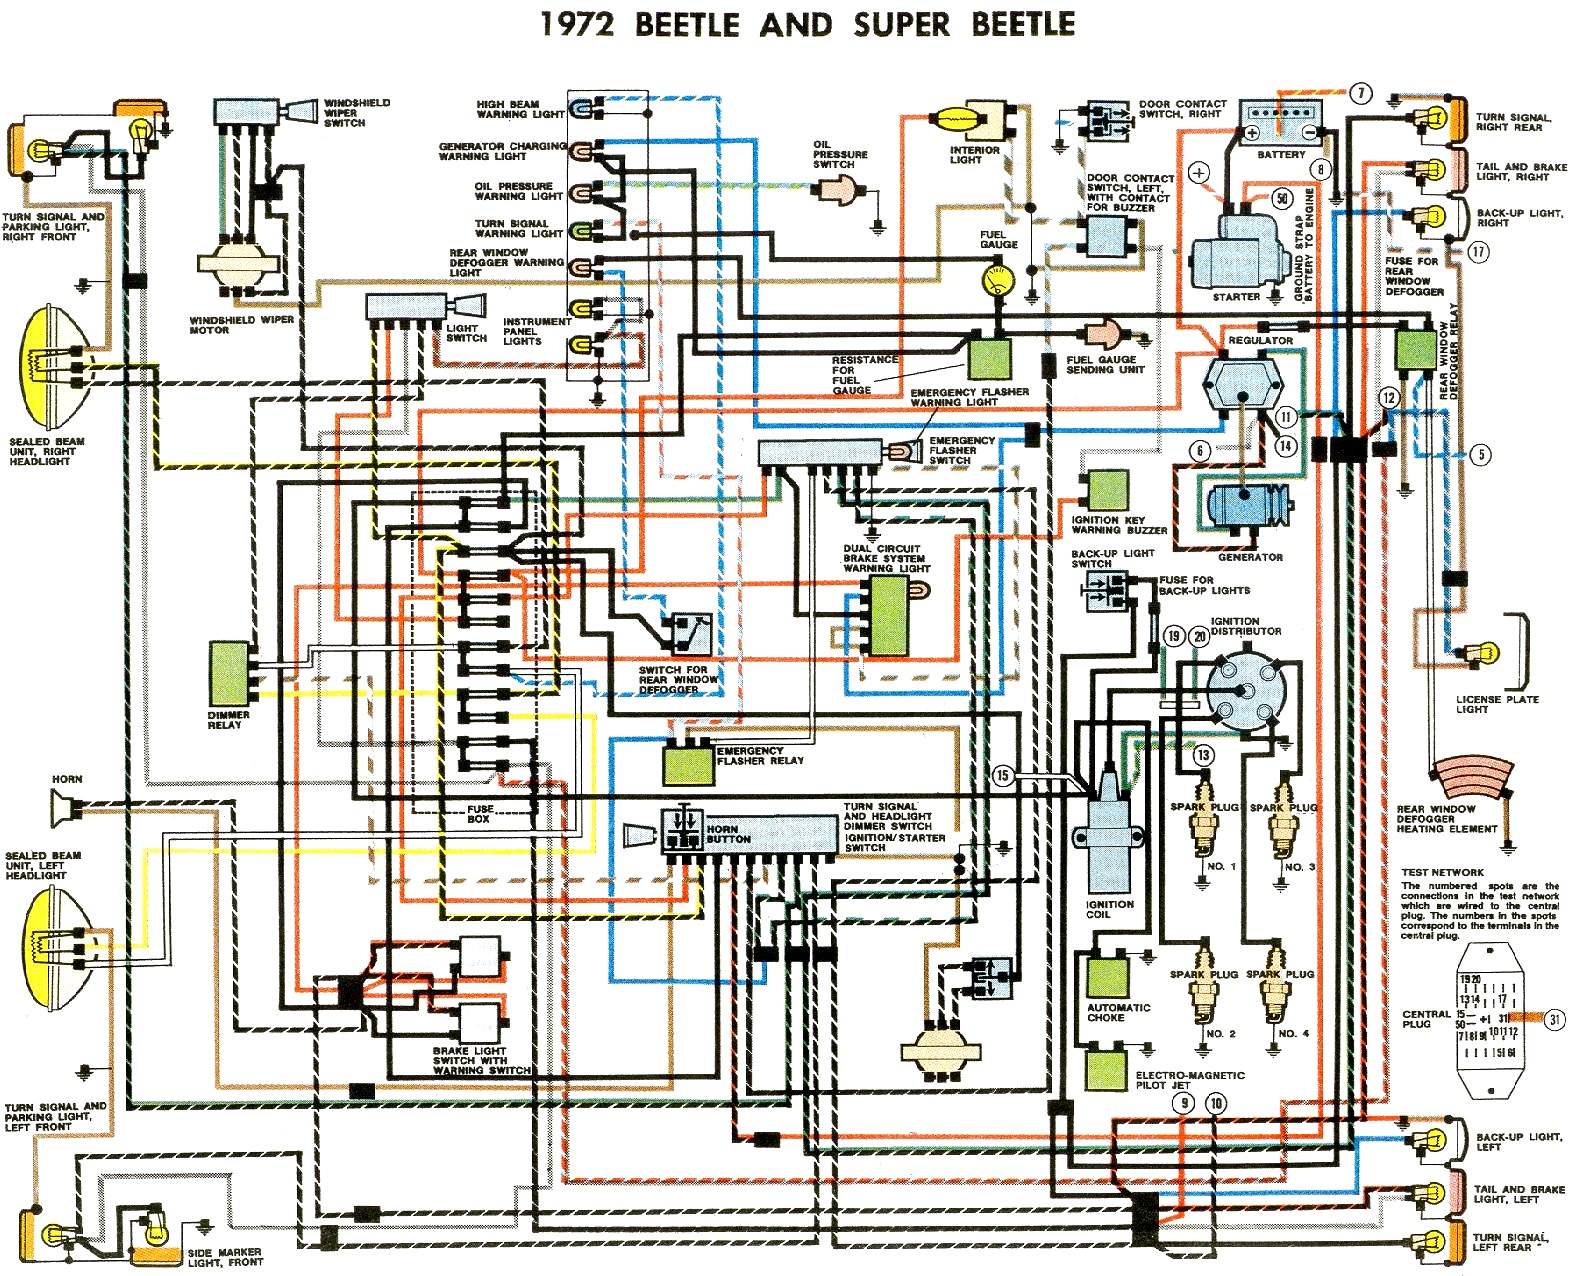 bug_72 1972 beetle wiring diagram thegoldenbug com 1973 vw beetle wiring diagram at n-0.co